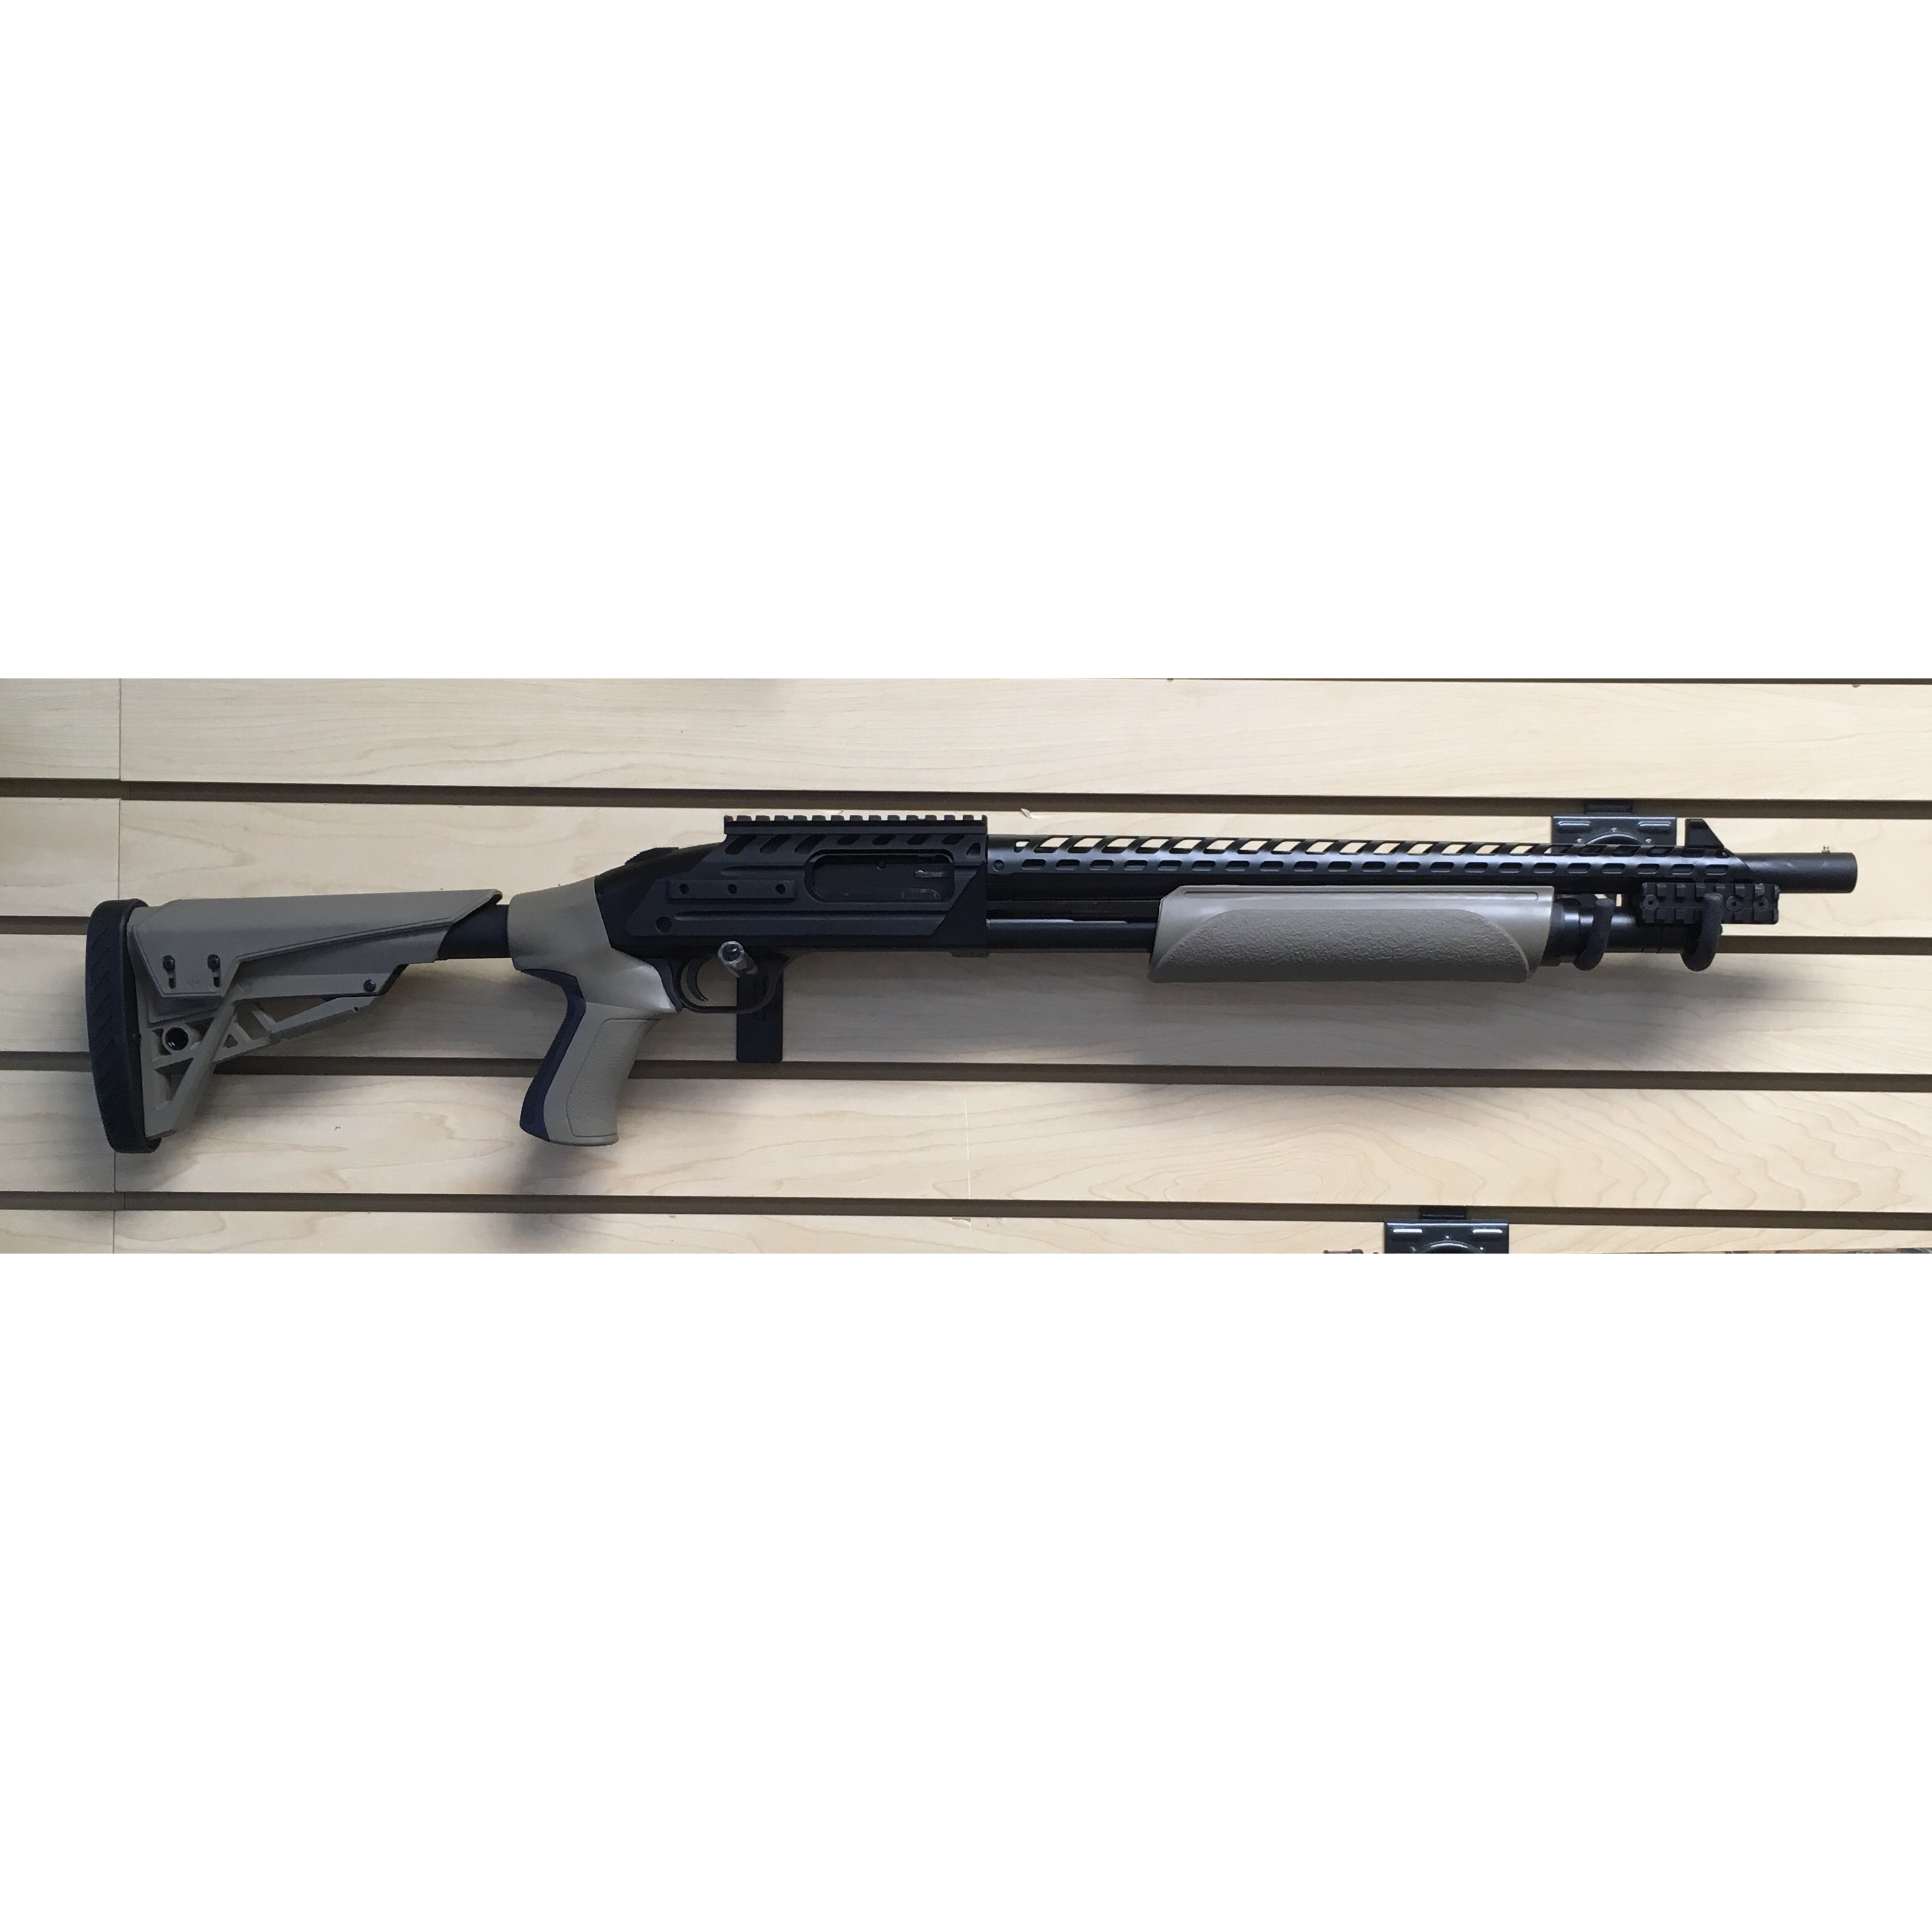 Mossberg 500 Ati Assurance Arms And Ammo